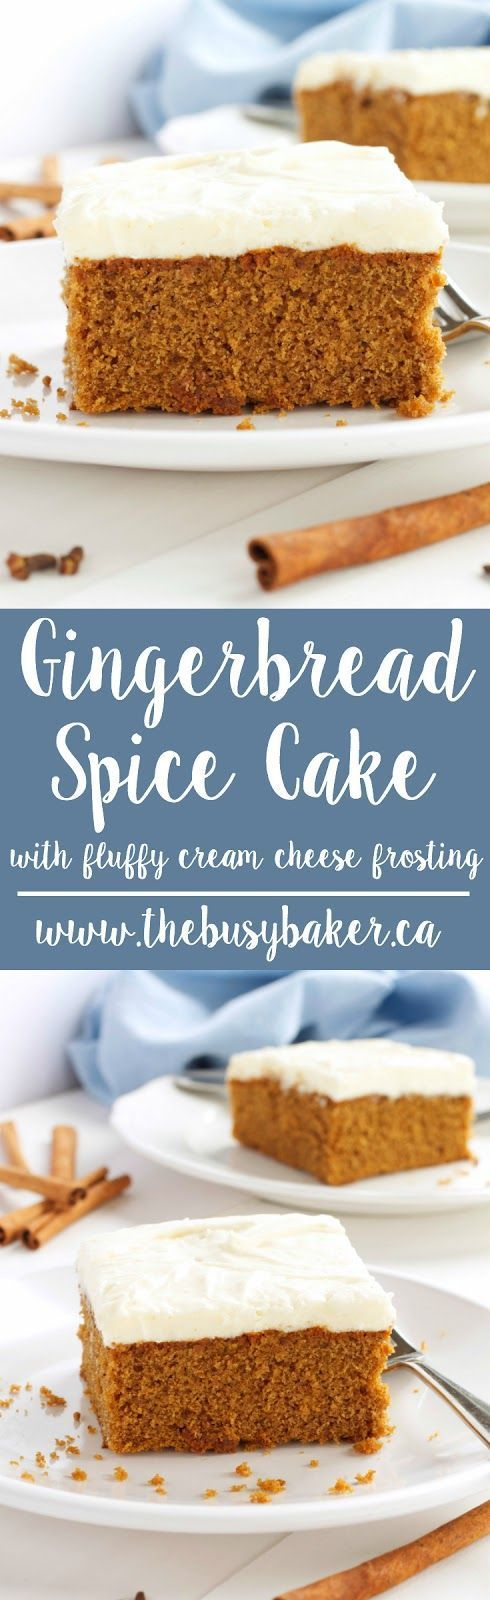 Gingerbread Spice Cake with Fluffy Cream Cheese Frosting. The perfect holiday dessert! http://www.thebusybaker.ca